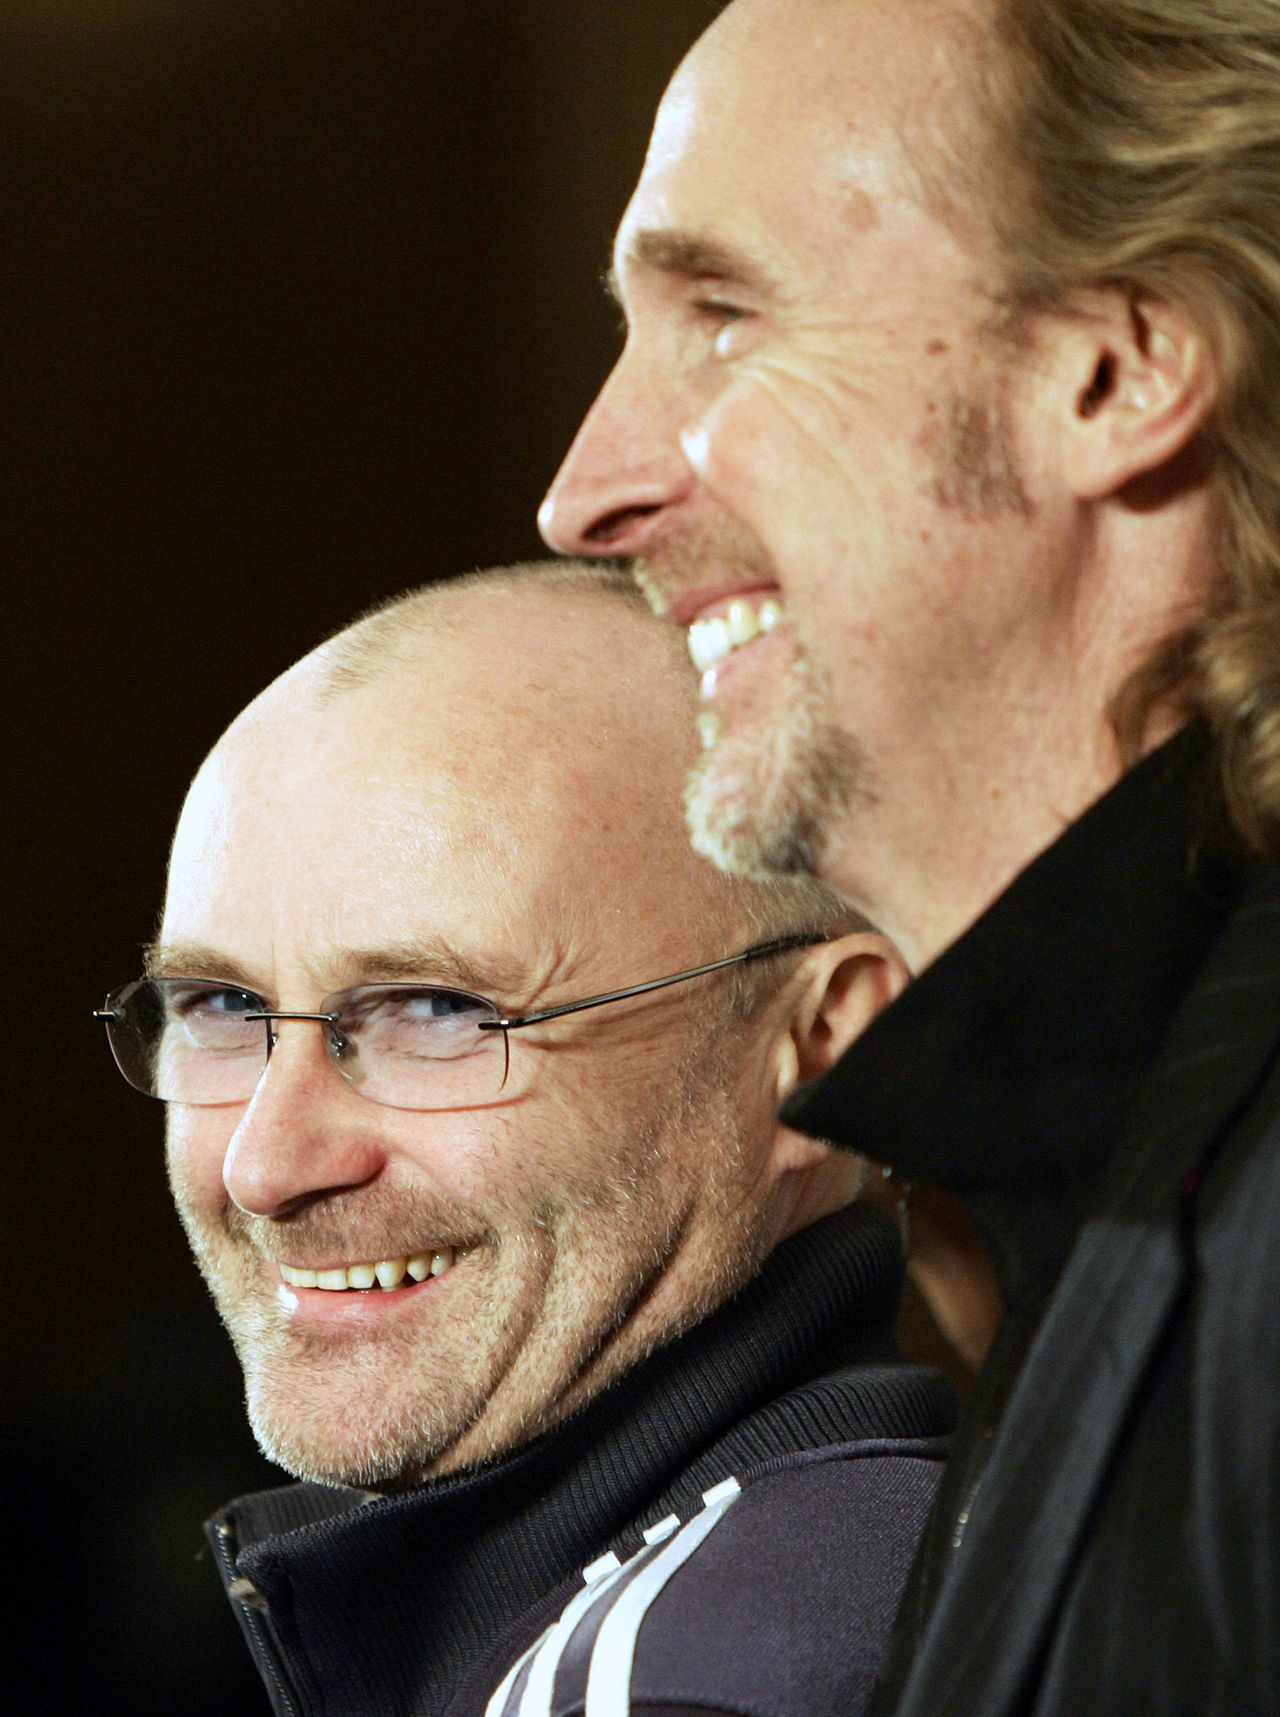 Beroemde fiscale vluchtelingen in Zwitserland: de zanger Phil Collins. Foto AP British rock band Genesis whose members Phil Collins, left, and Mike Rutherford as they announce tour dates after a 15 year break in London Tuesday Nov. 7, 2006. The band have announced a European tour starting in Helsinki, on June 11, and ending in Rome on July 14, with a total of 20 dates to play. (AP Photo/Alastair Grant)